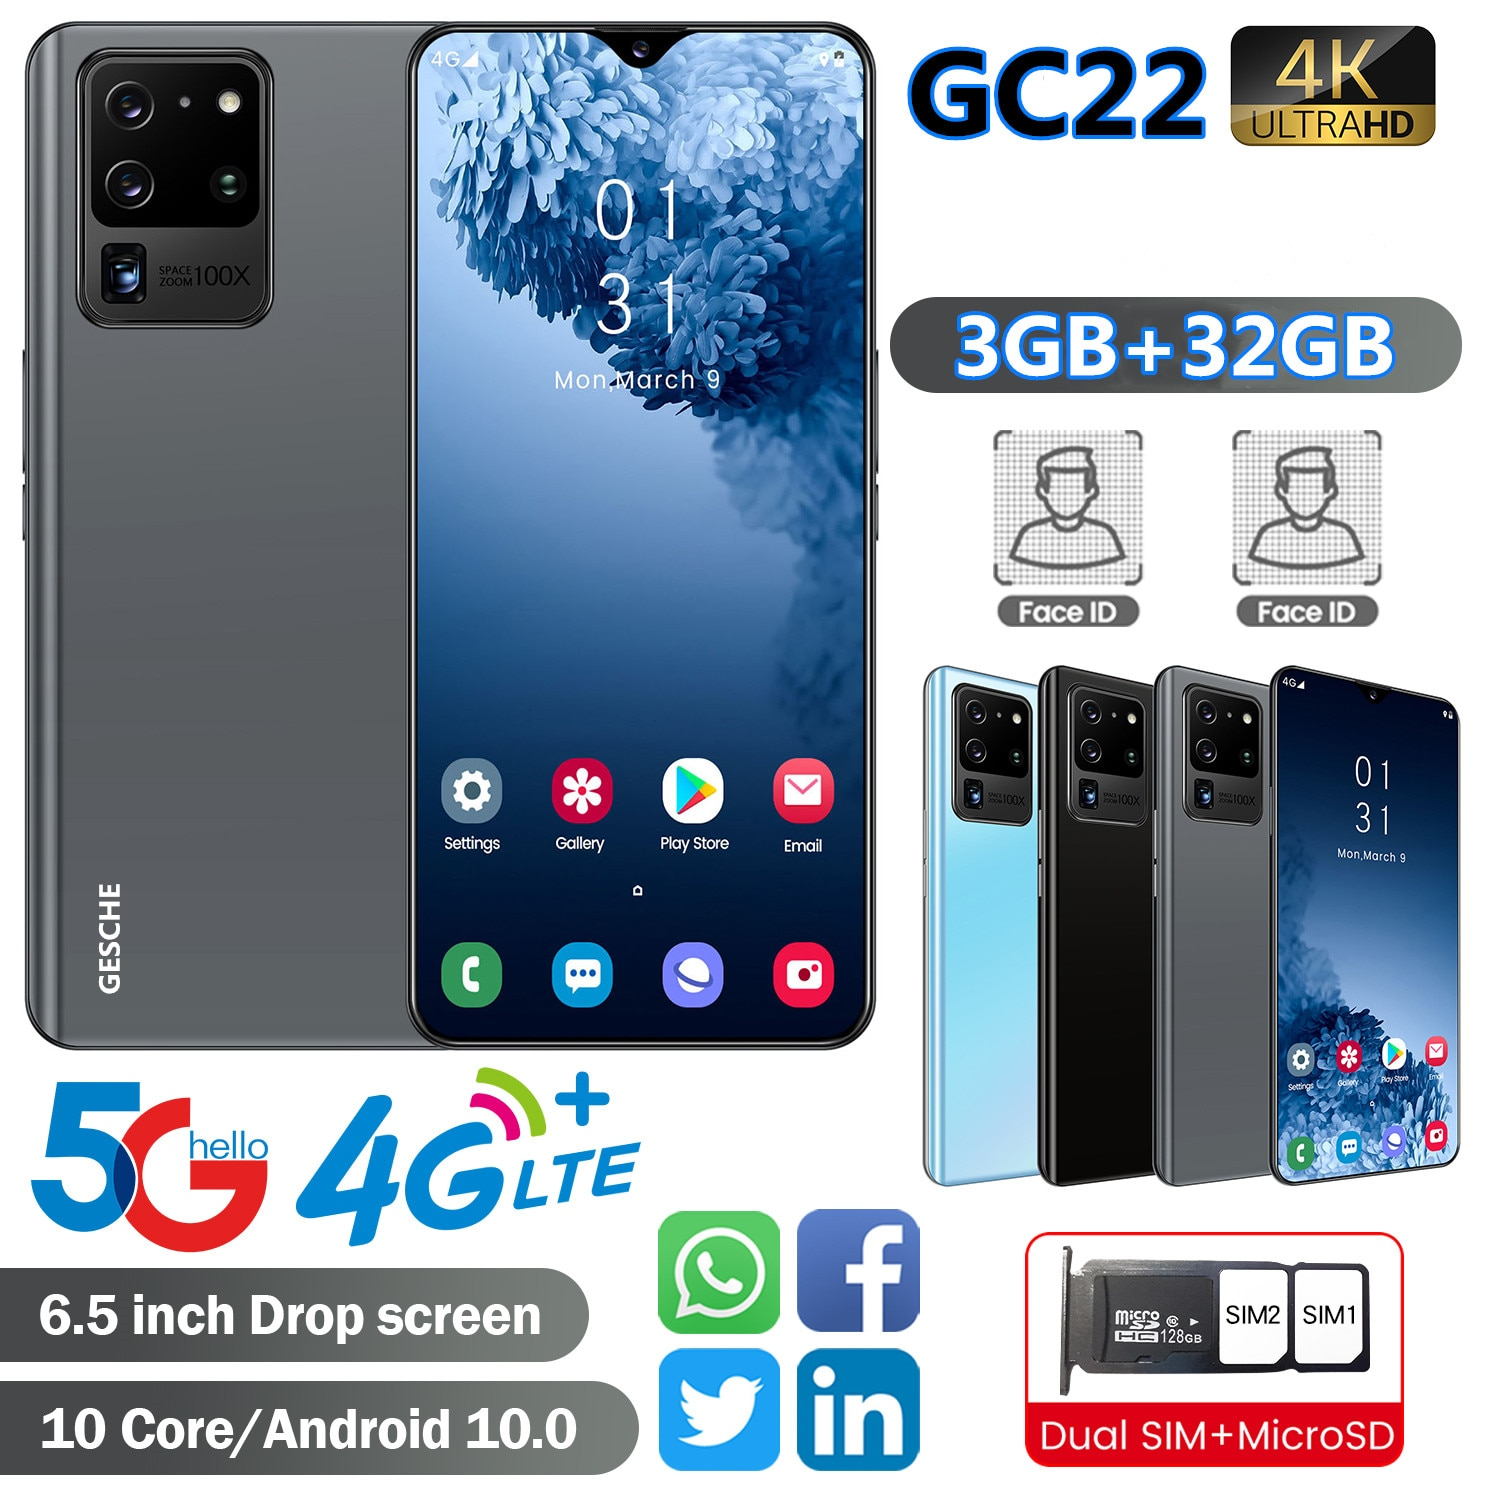 GESCHE GC22 Smartphone AI Camera 3GB+32GB Mobile Phones 4G LTE Celular 6.5 InchFace recognition 4200mAh Android 9 Cell Phone